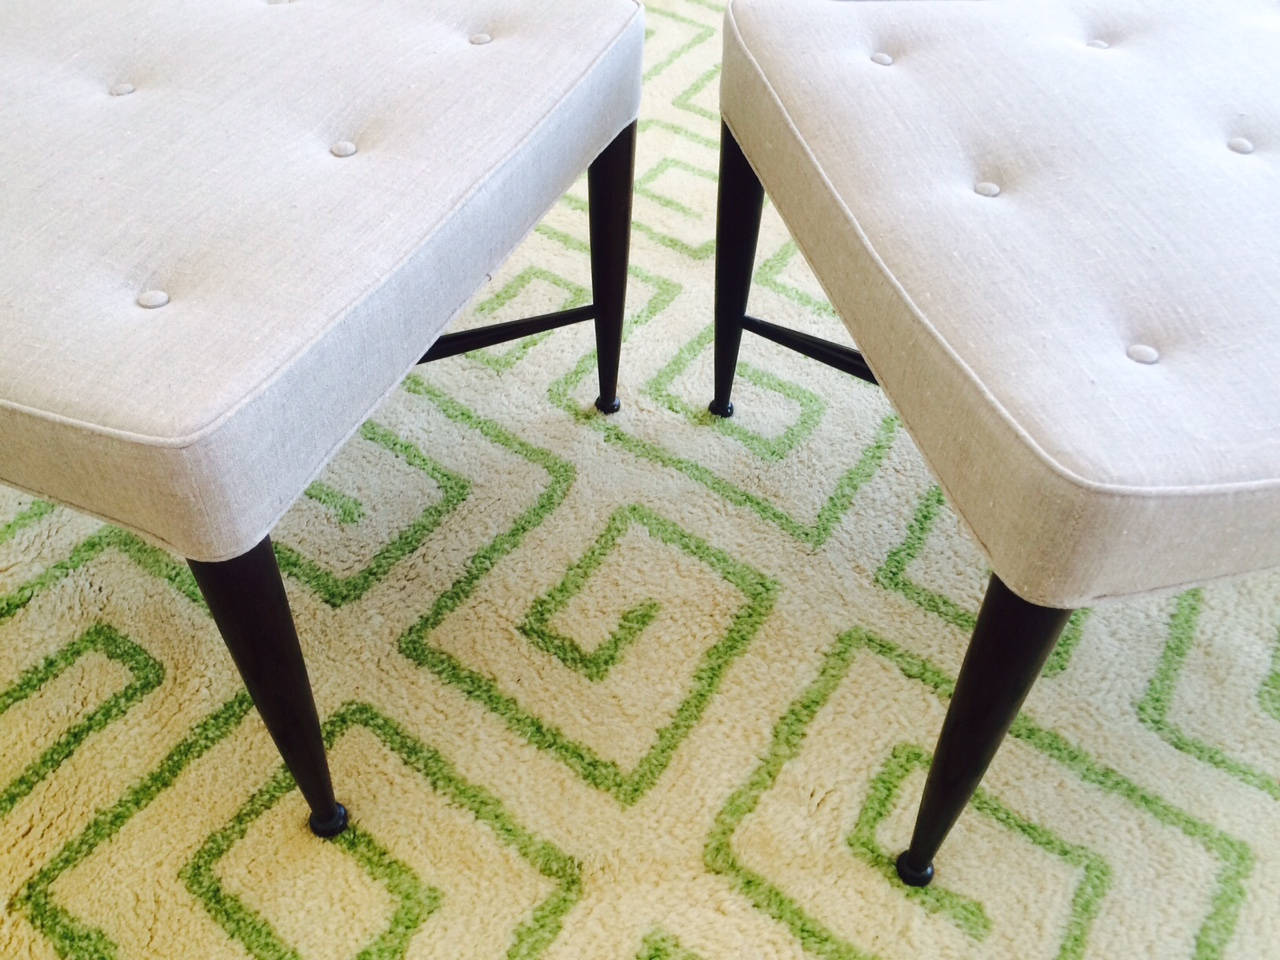 American Pair of Dunbar Thiebes Stools For Sale